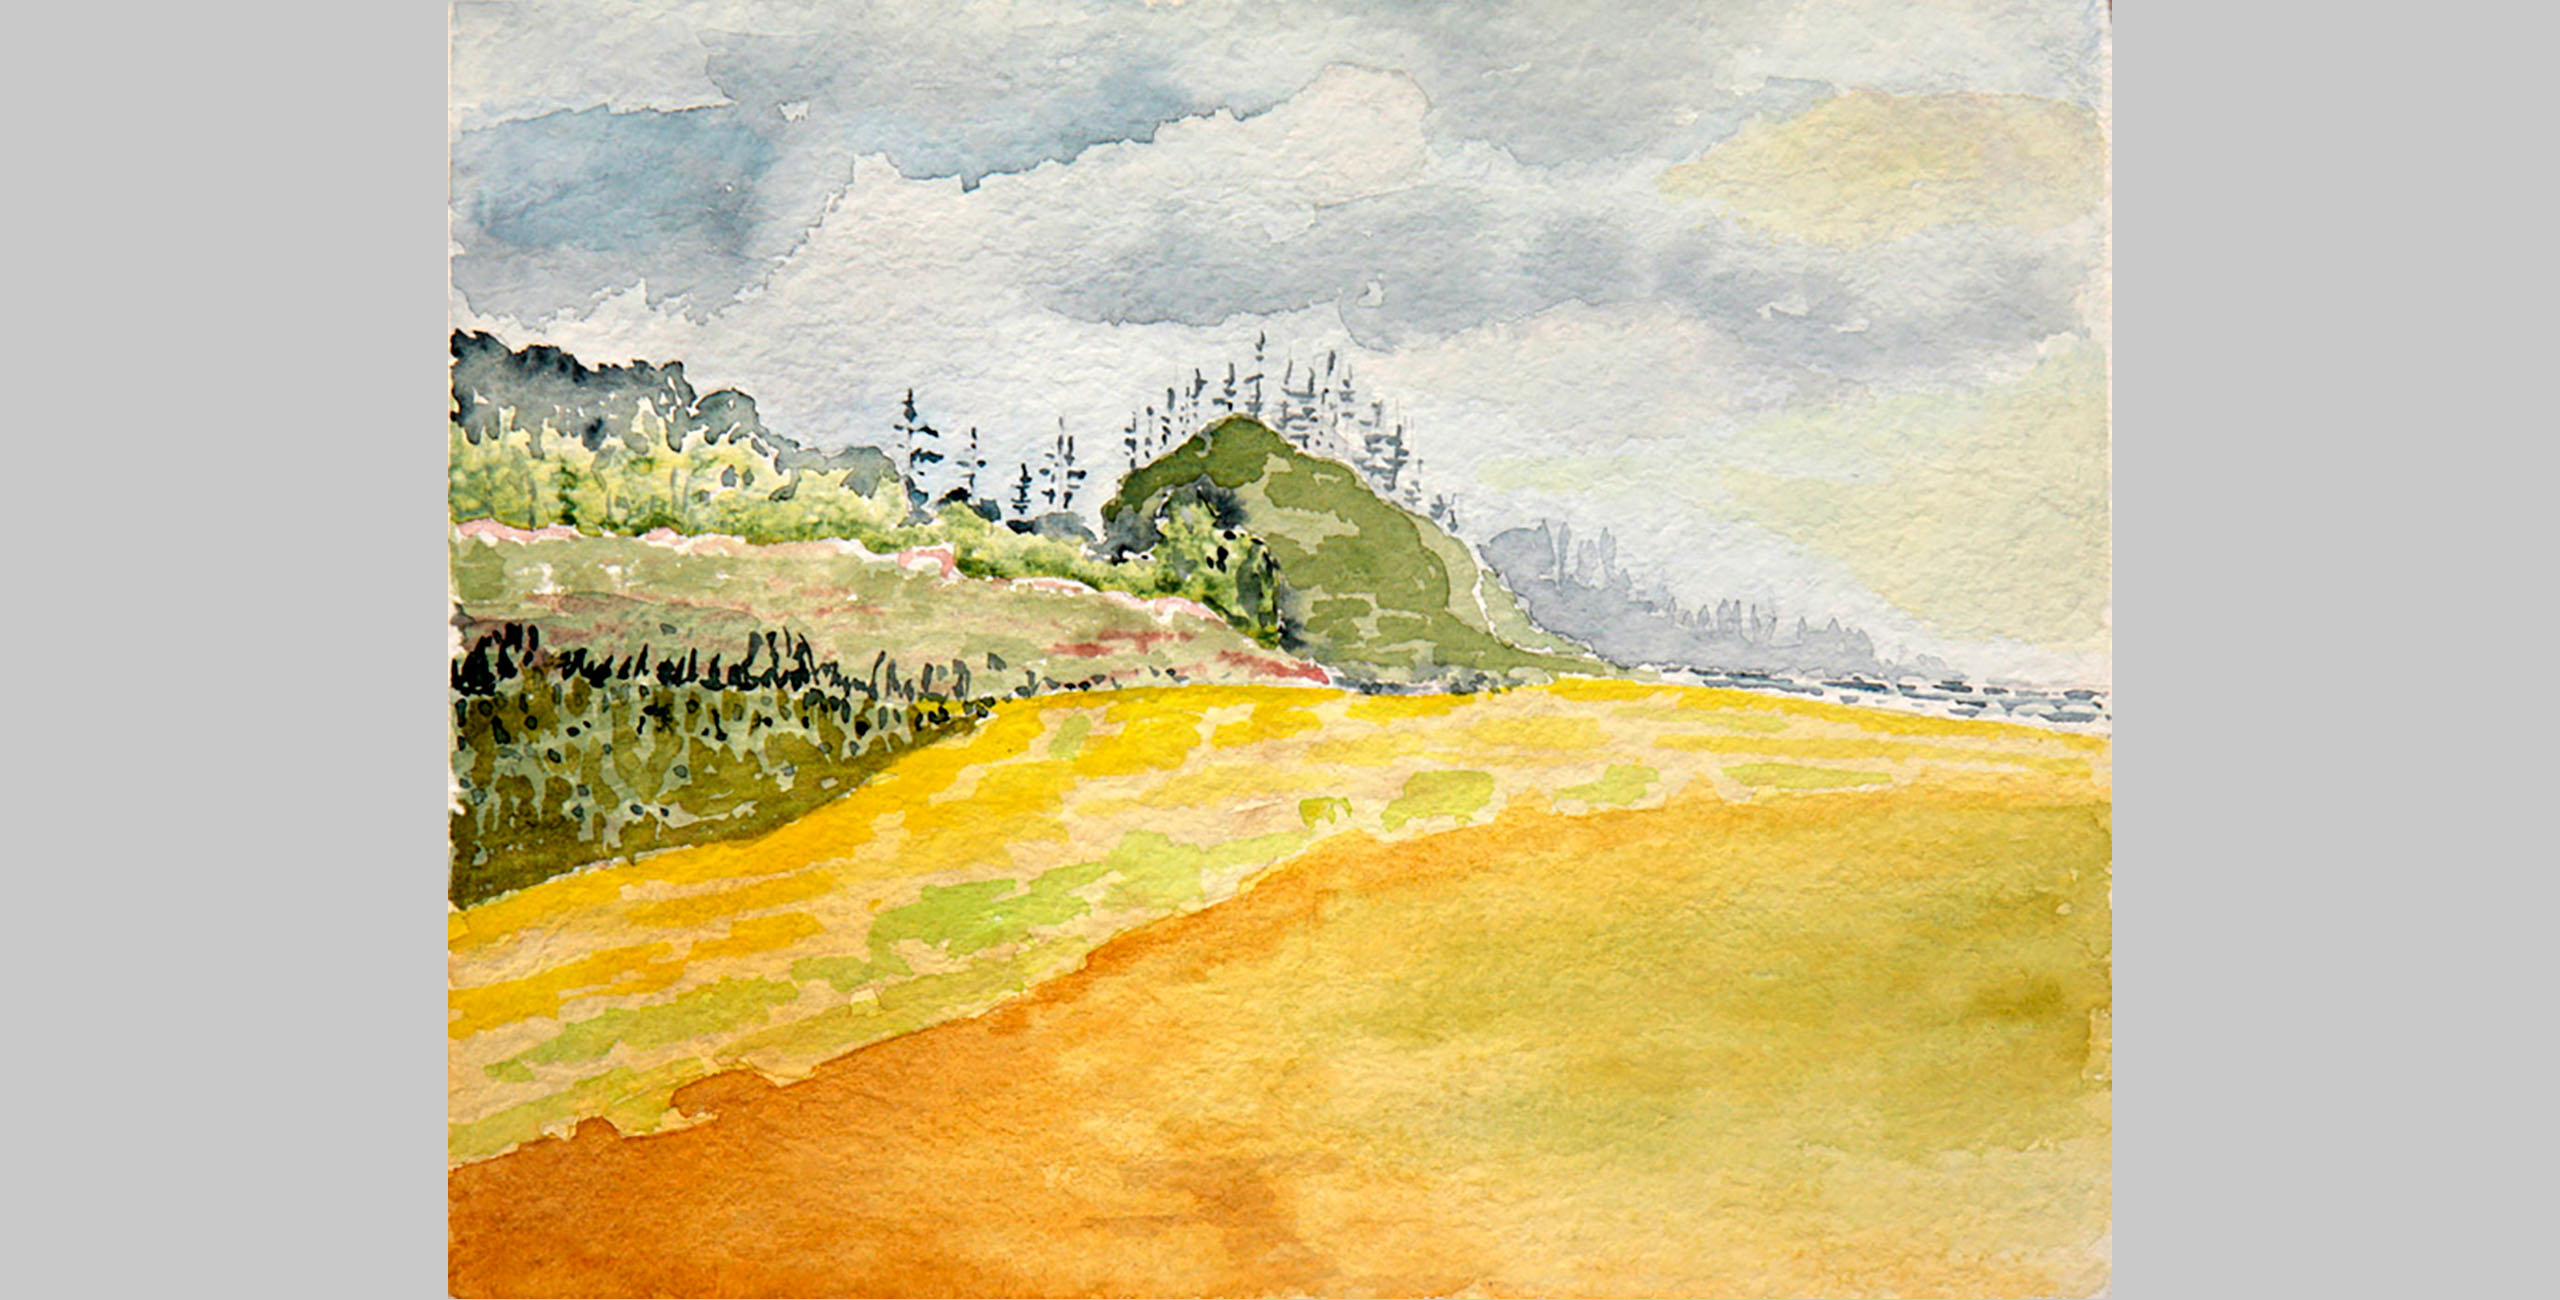 Grass Layers, 2008, watercolor